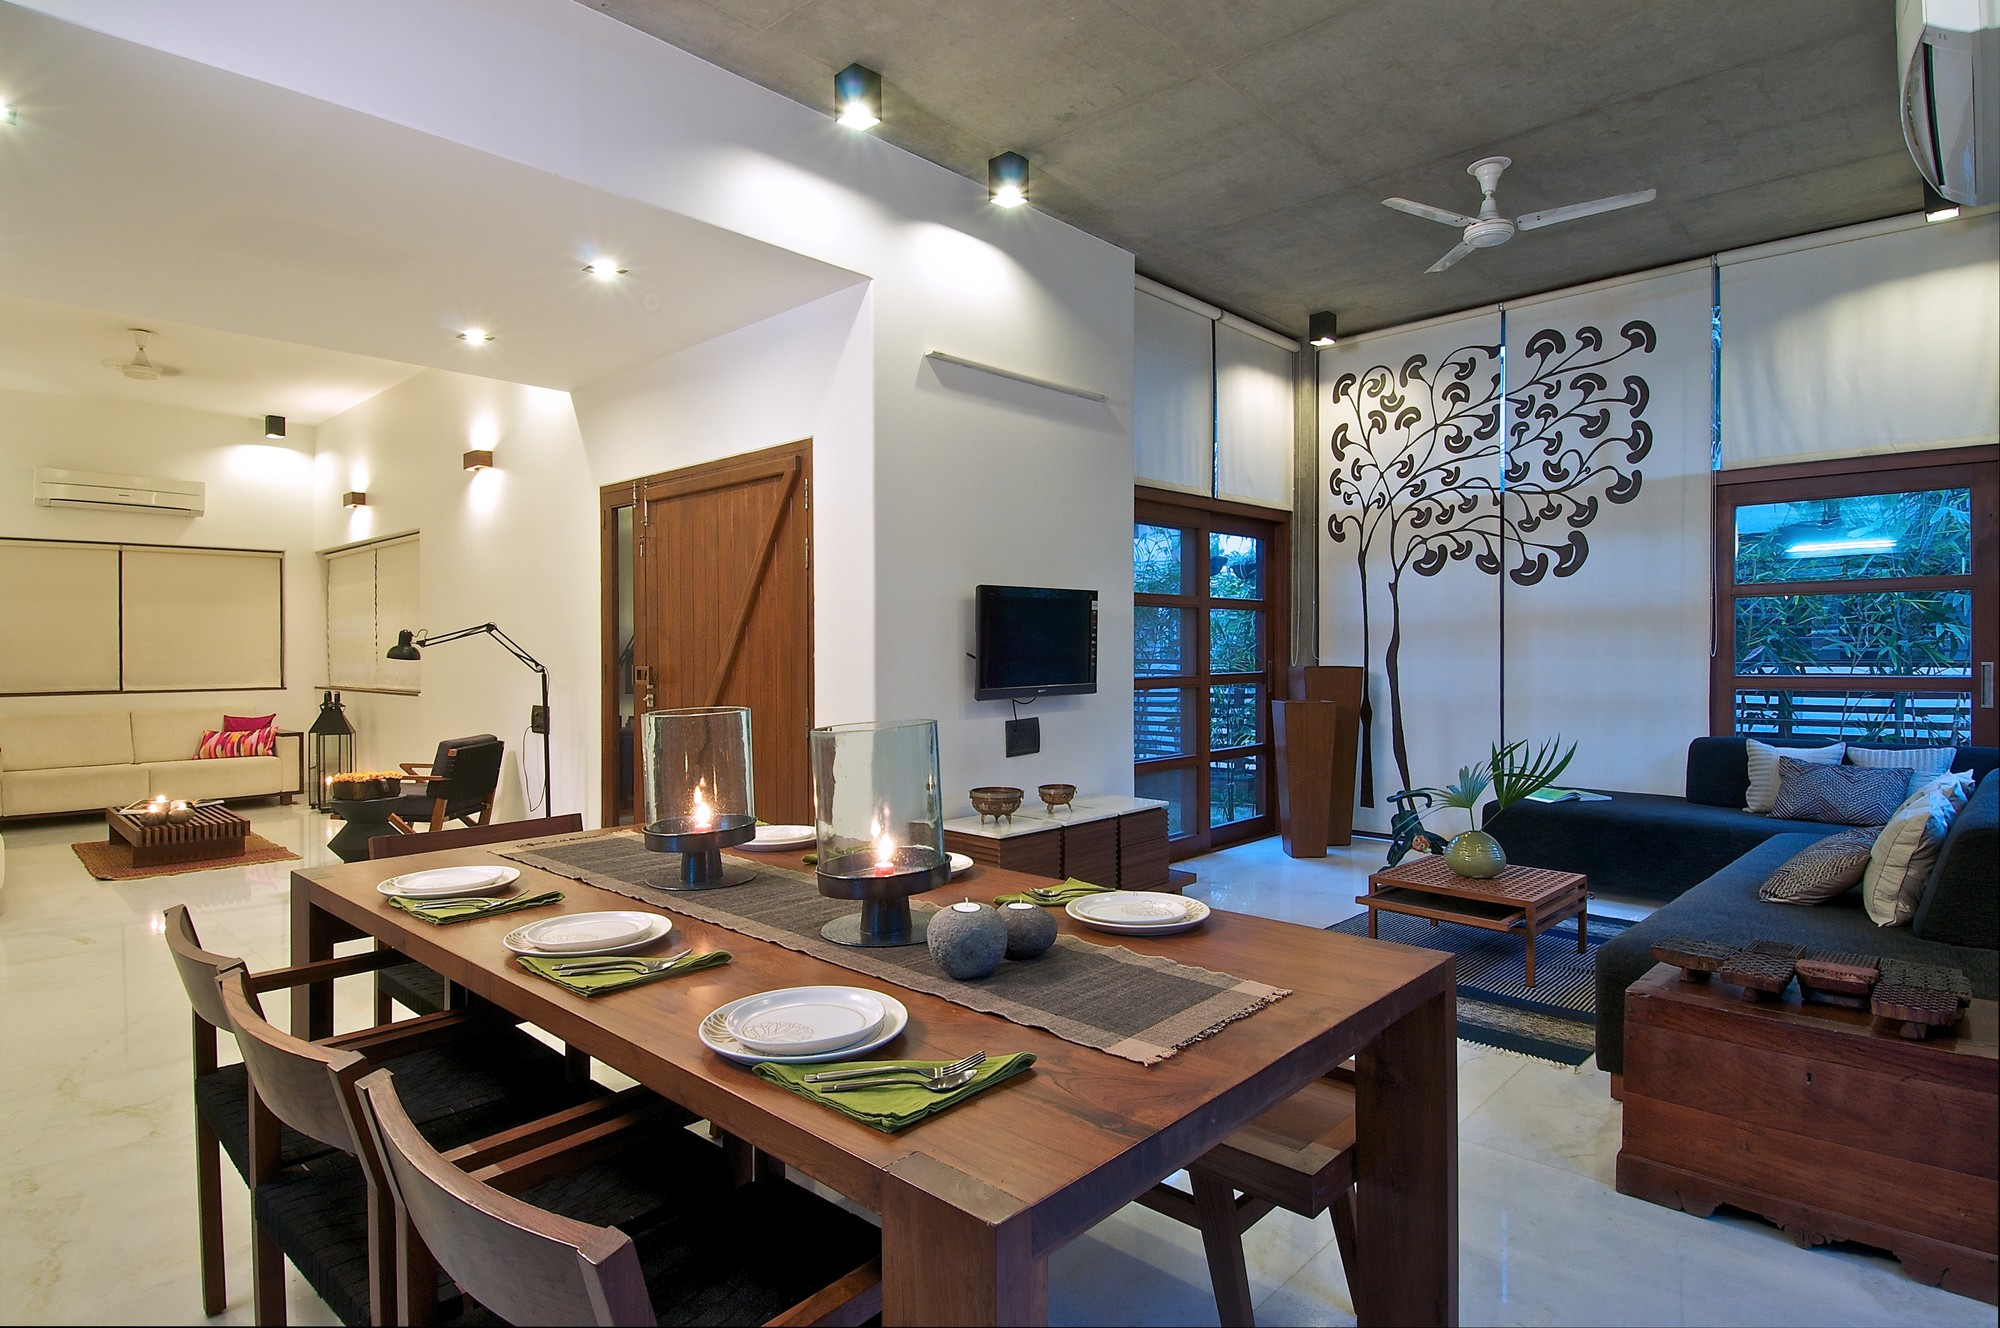 Gallery of the green house hiren patel architects 6 for Como e dining room em portugues